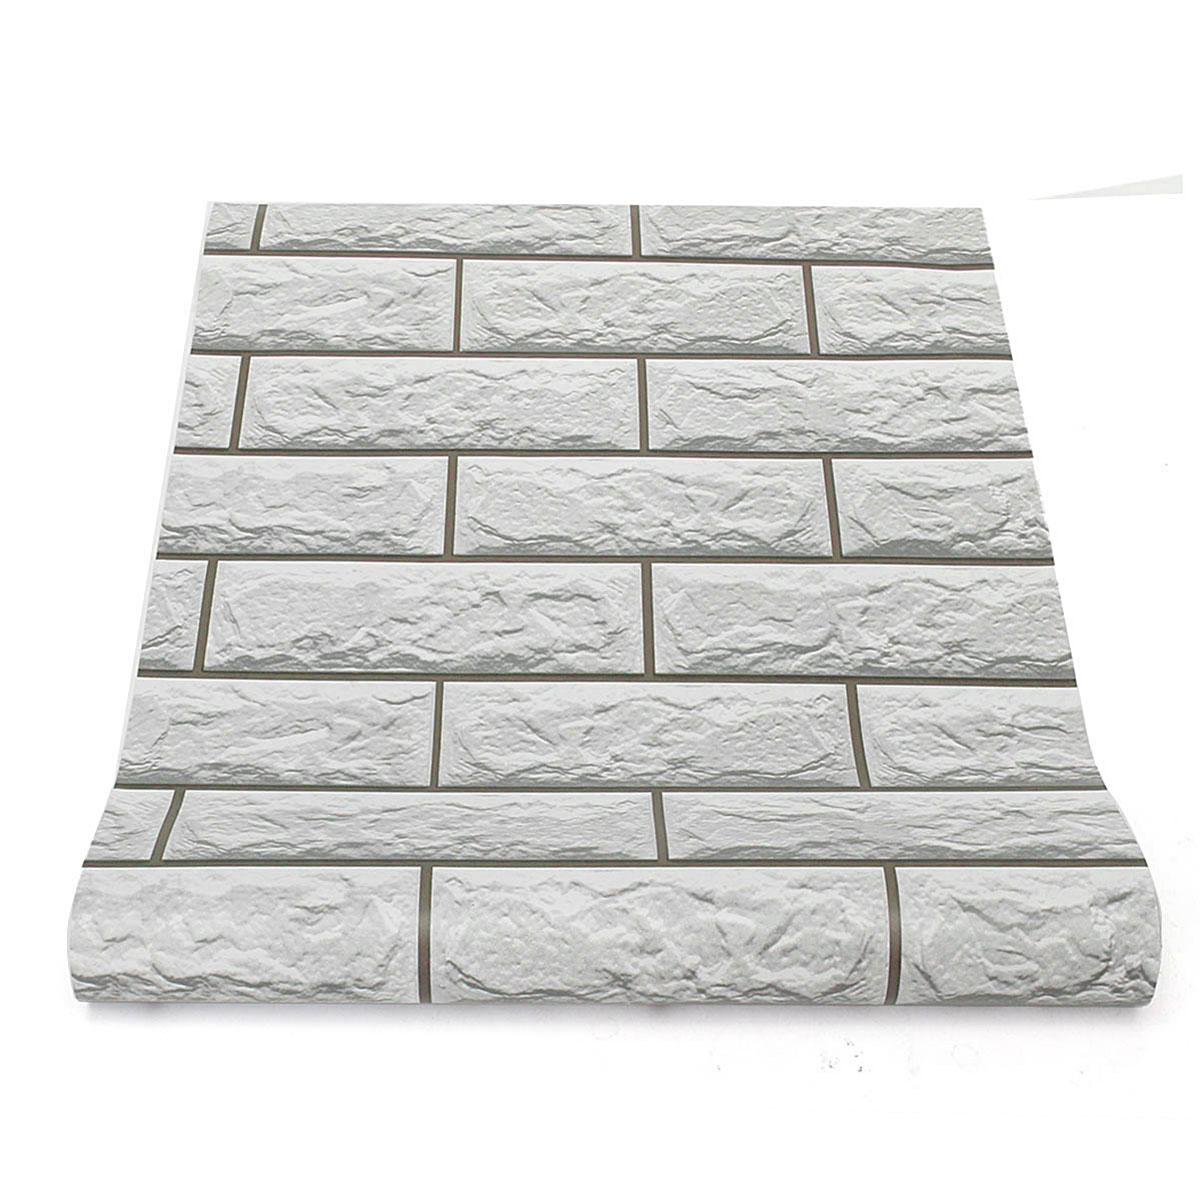 10m 3D Grey Brick Pattern Self Adhesive Wallpaper Home Living Room Decoration Wall Sticker Roll